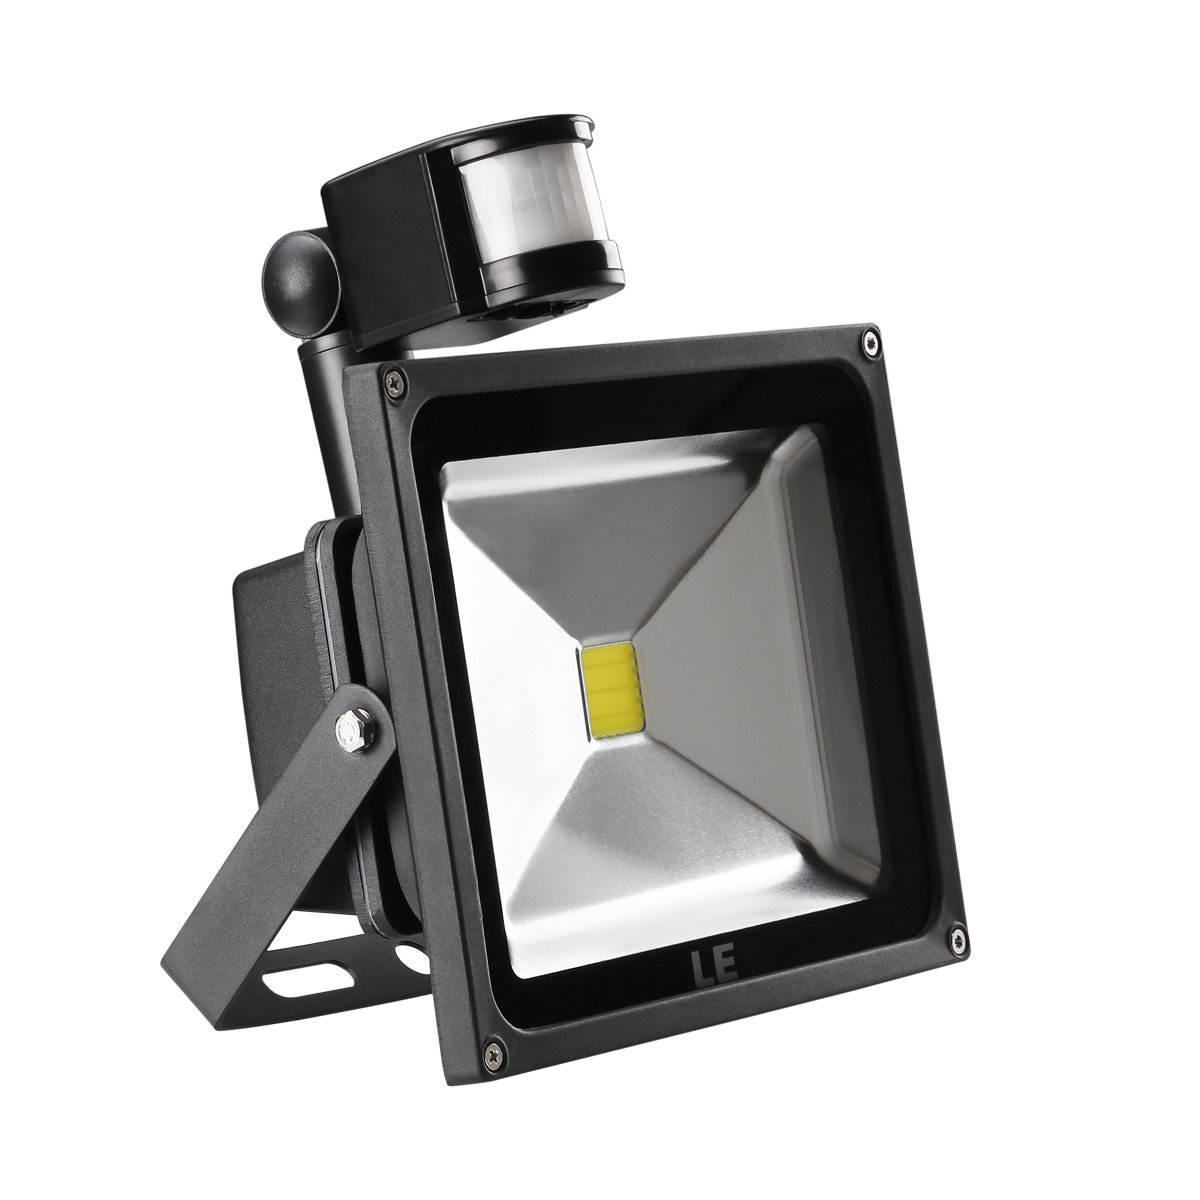 le 30w motion sensor light led flood lights 75w hps equivalent. Black Bedroom Furniture Sets. Home Design Ideas